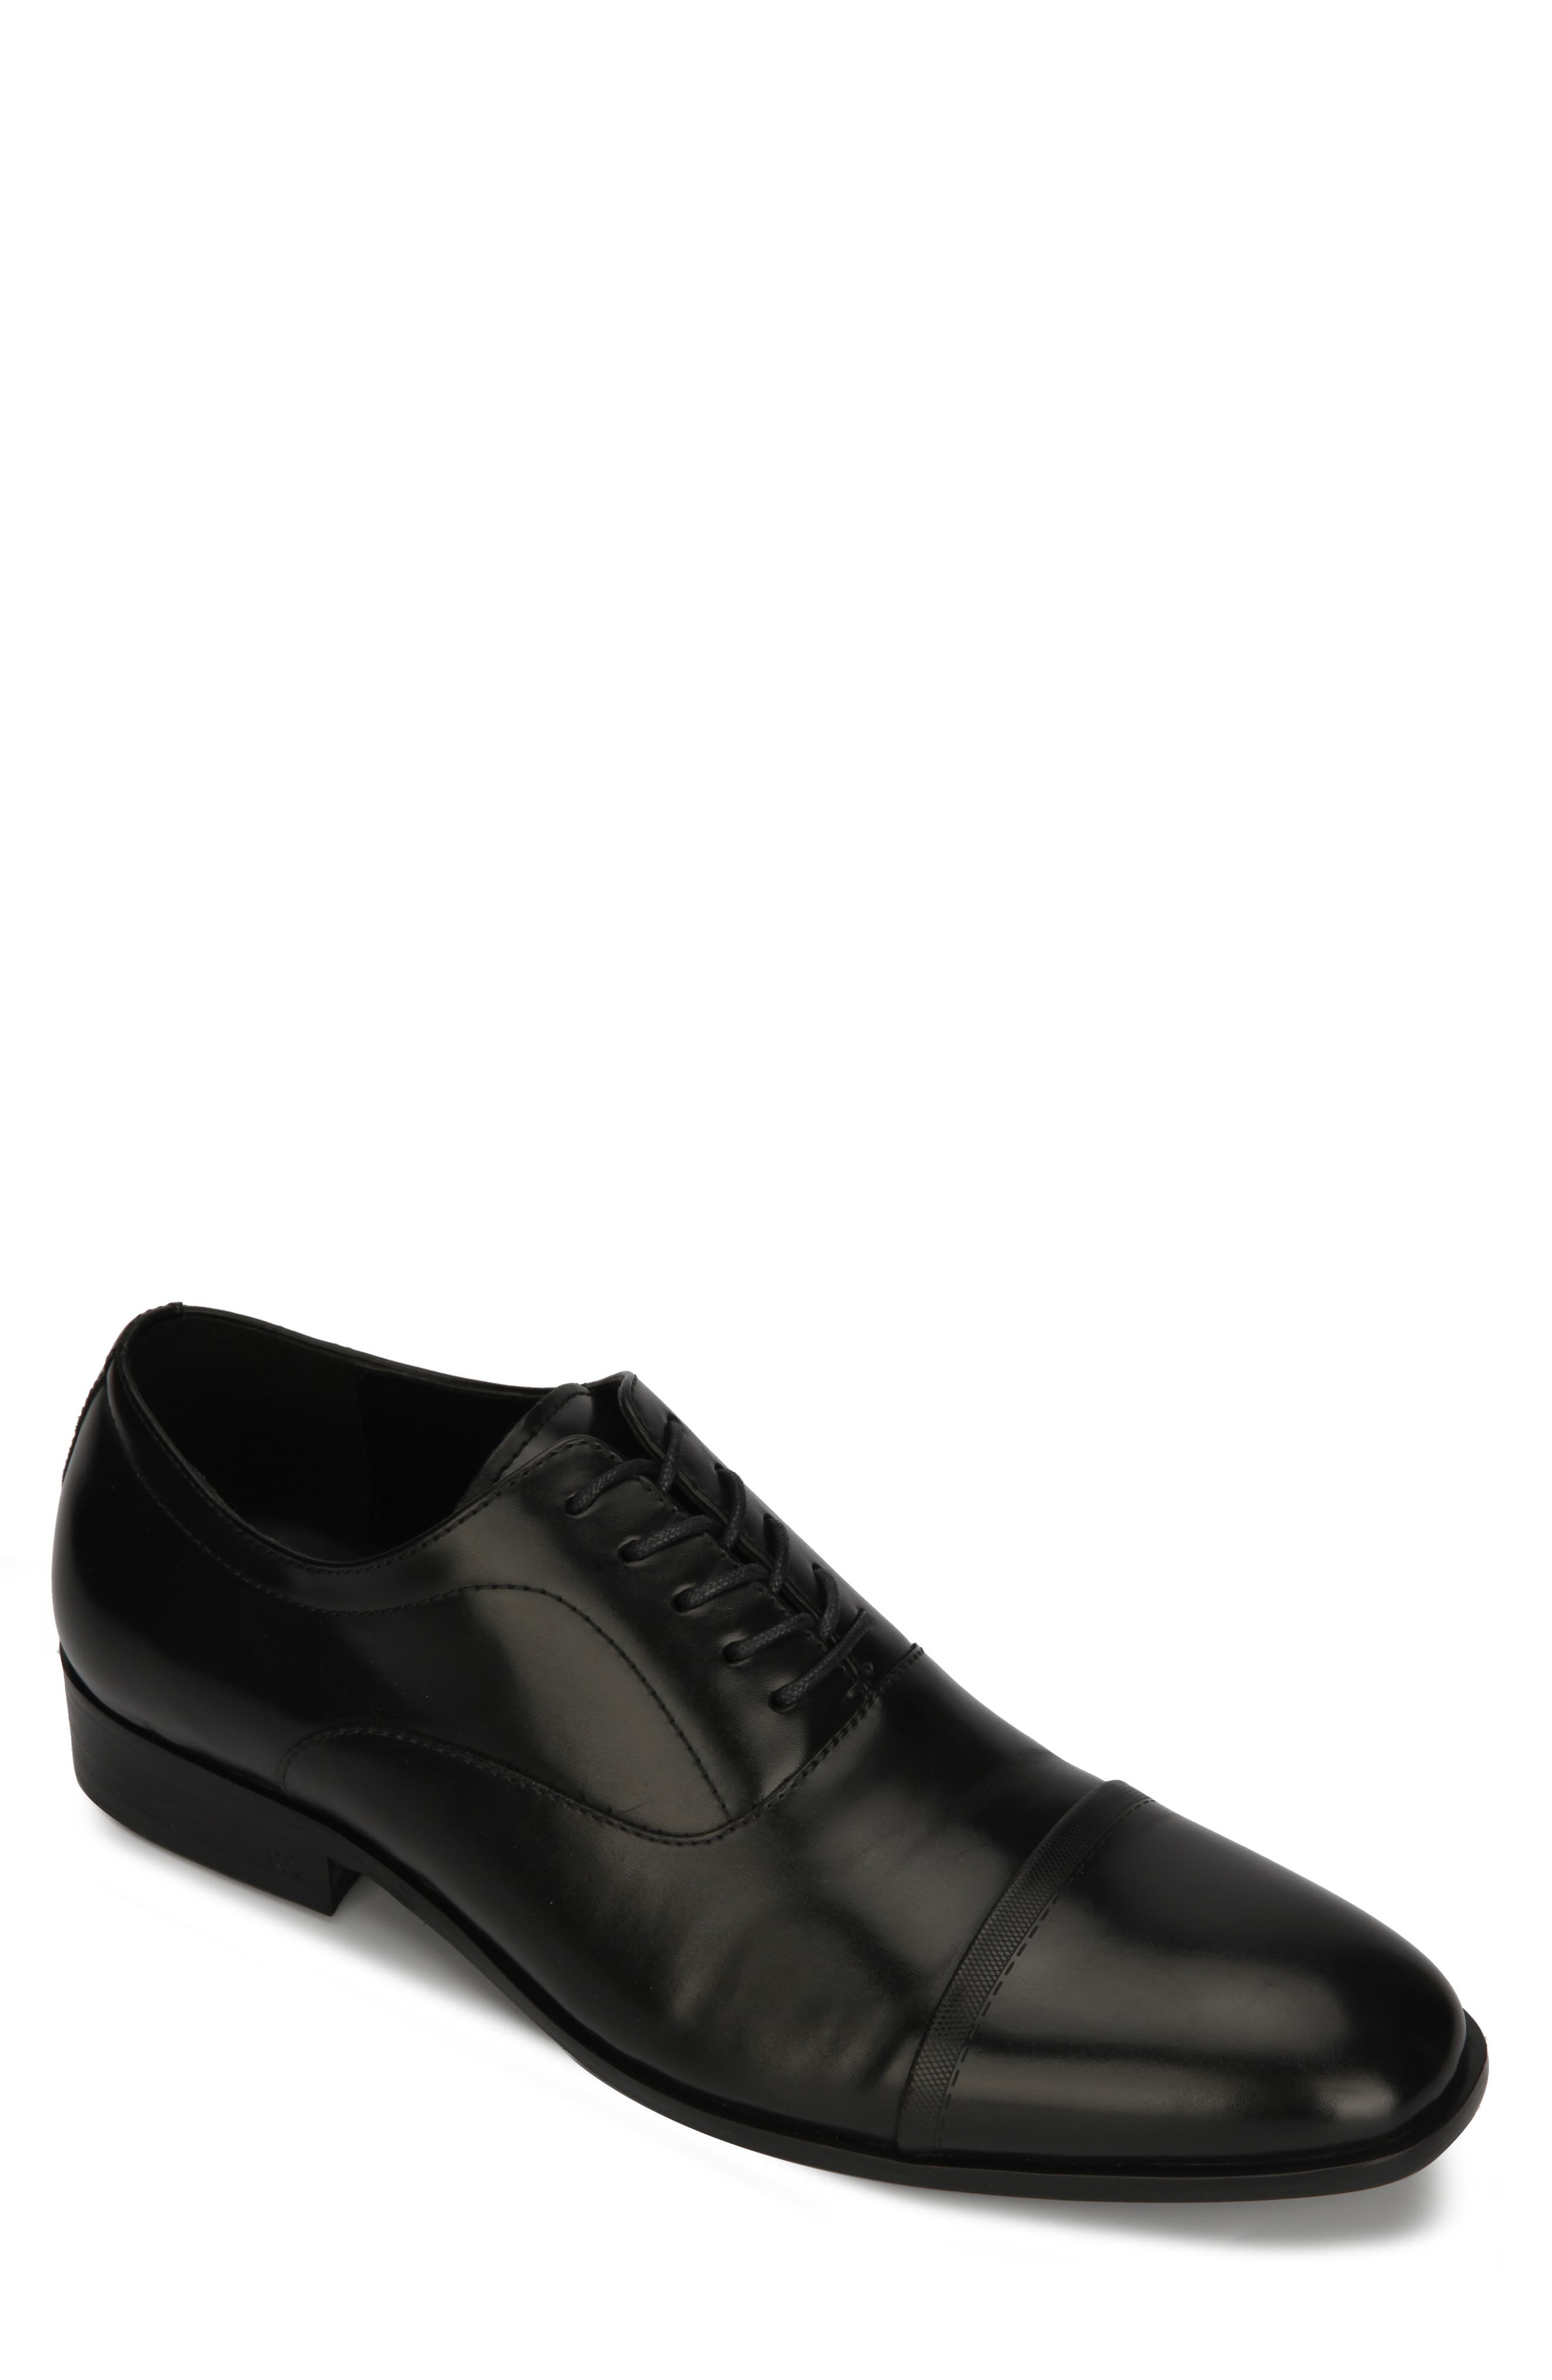 REACTION KENNETH COLE, Robson Cap Toe Oxford, Main thumbnail 1, color, BLACK